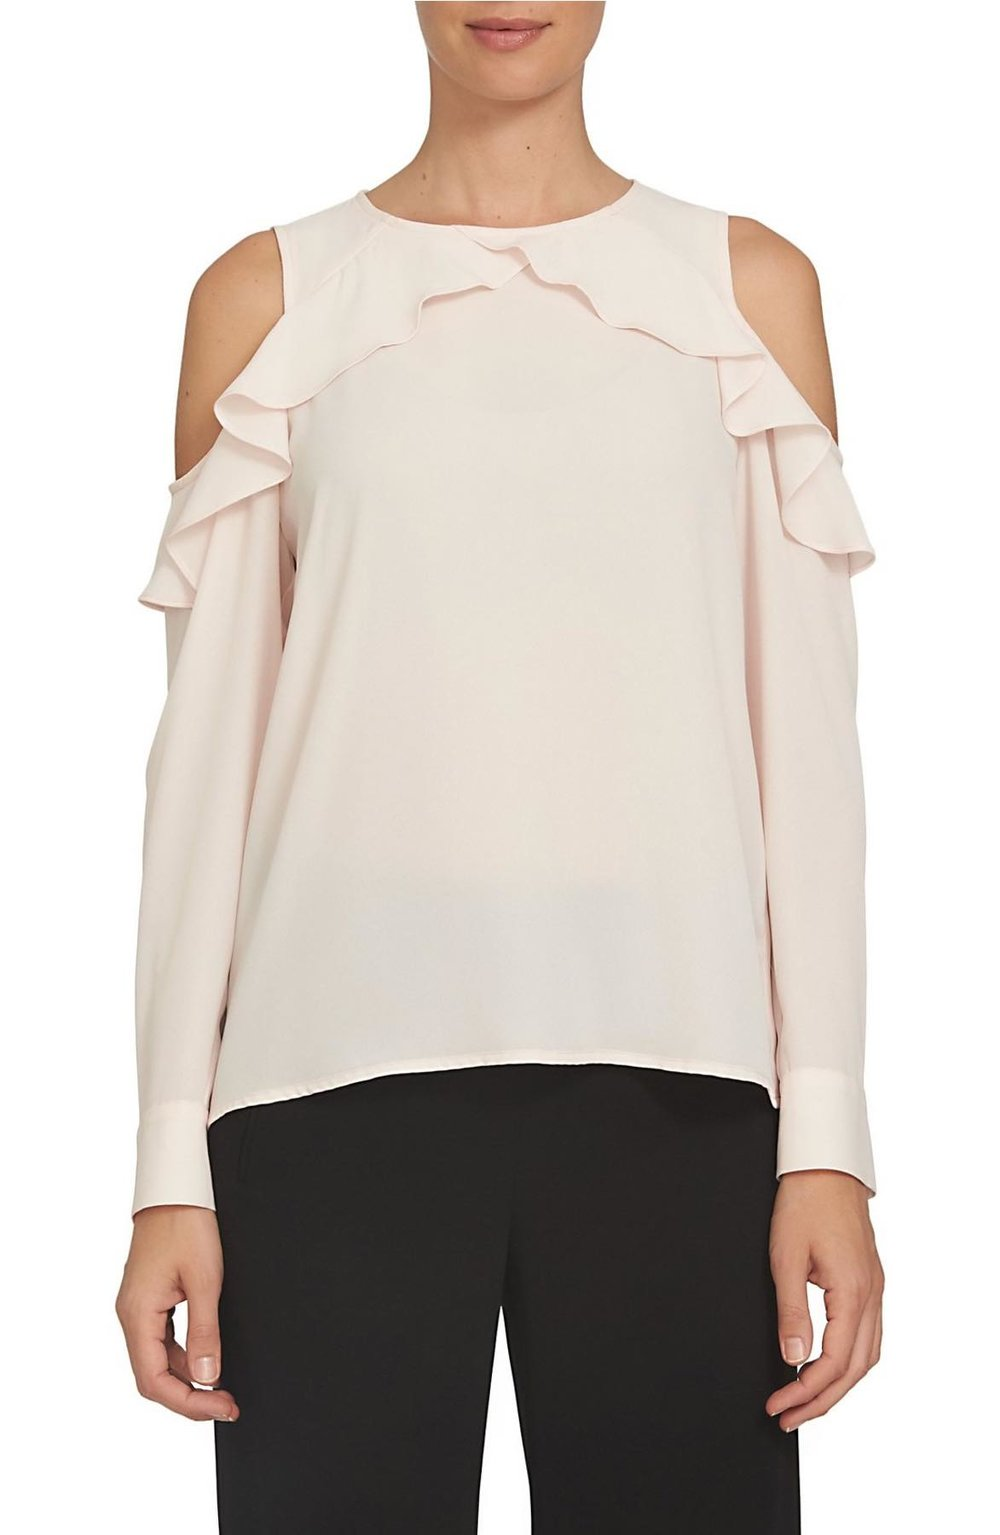 CeCe ruffled cold shoulder blouse in peach rose